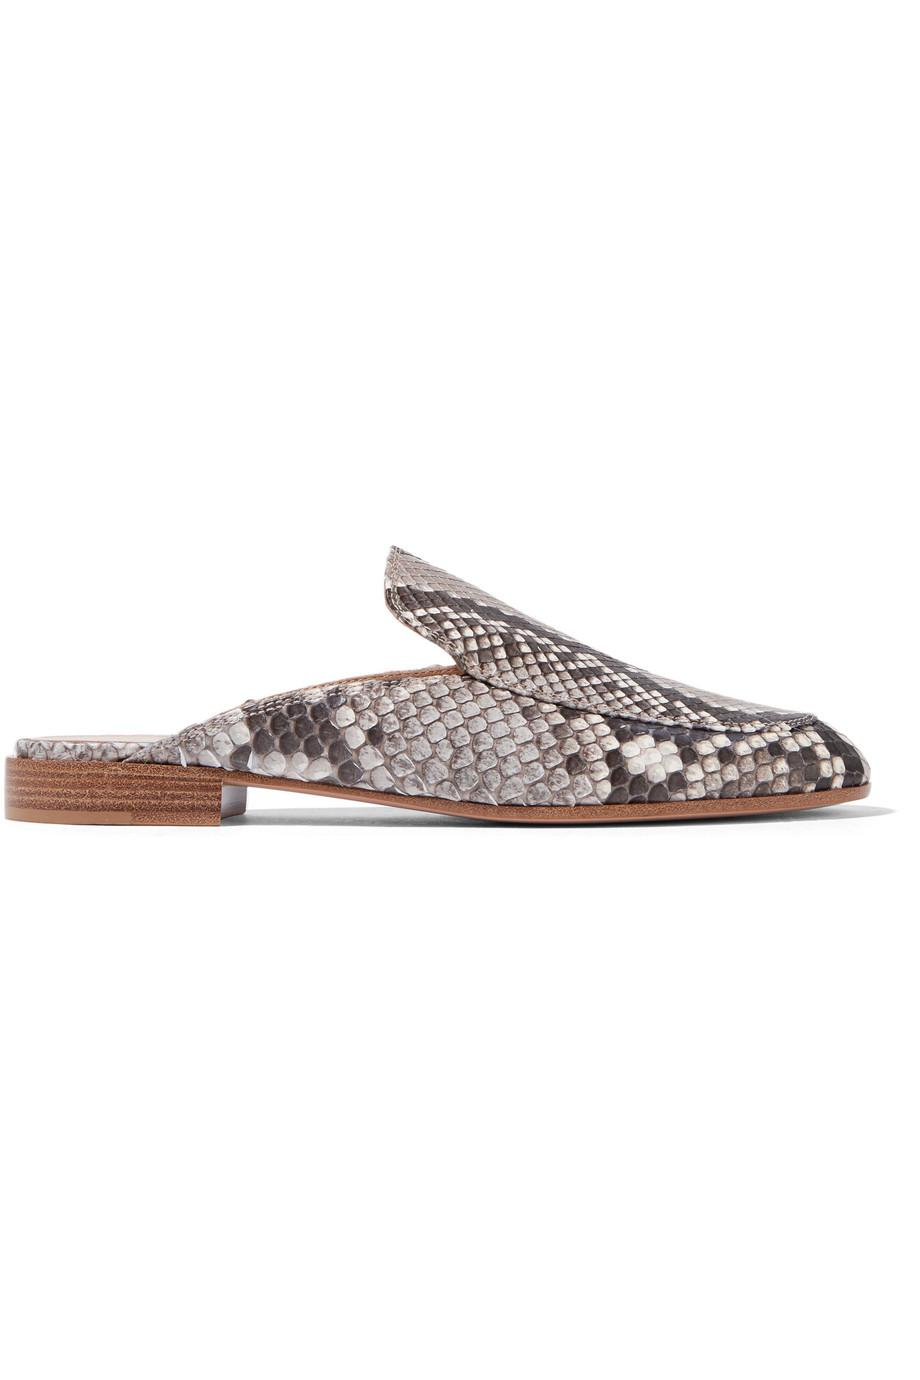 c4977eed0bd Lyst - Gianvito Rossi Woman Python Slippers Animal Print